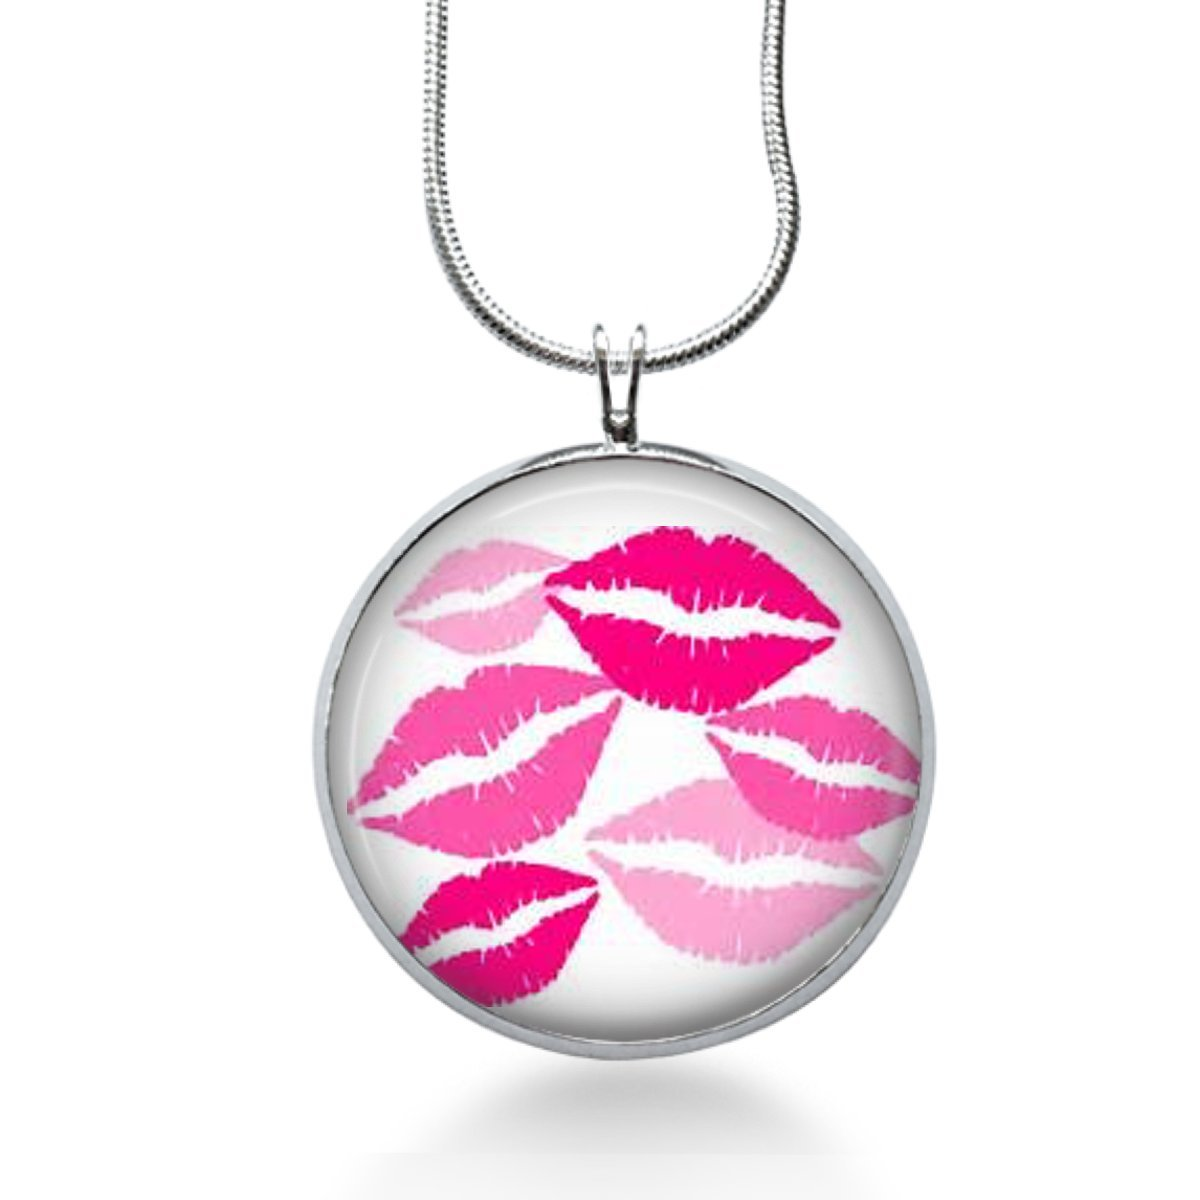 Lips mouth necklace Teen fun jewelry- handmade gifts